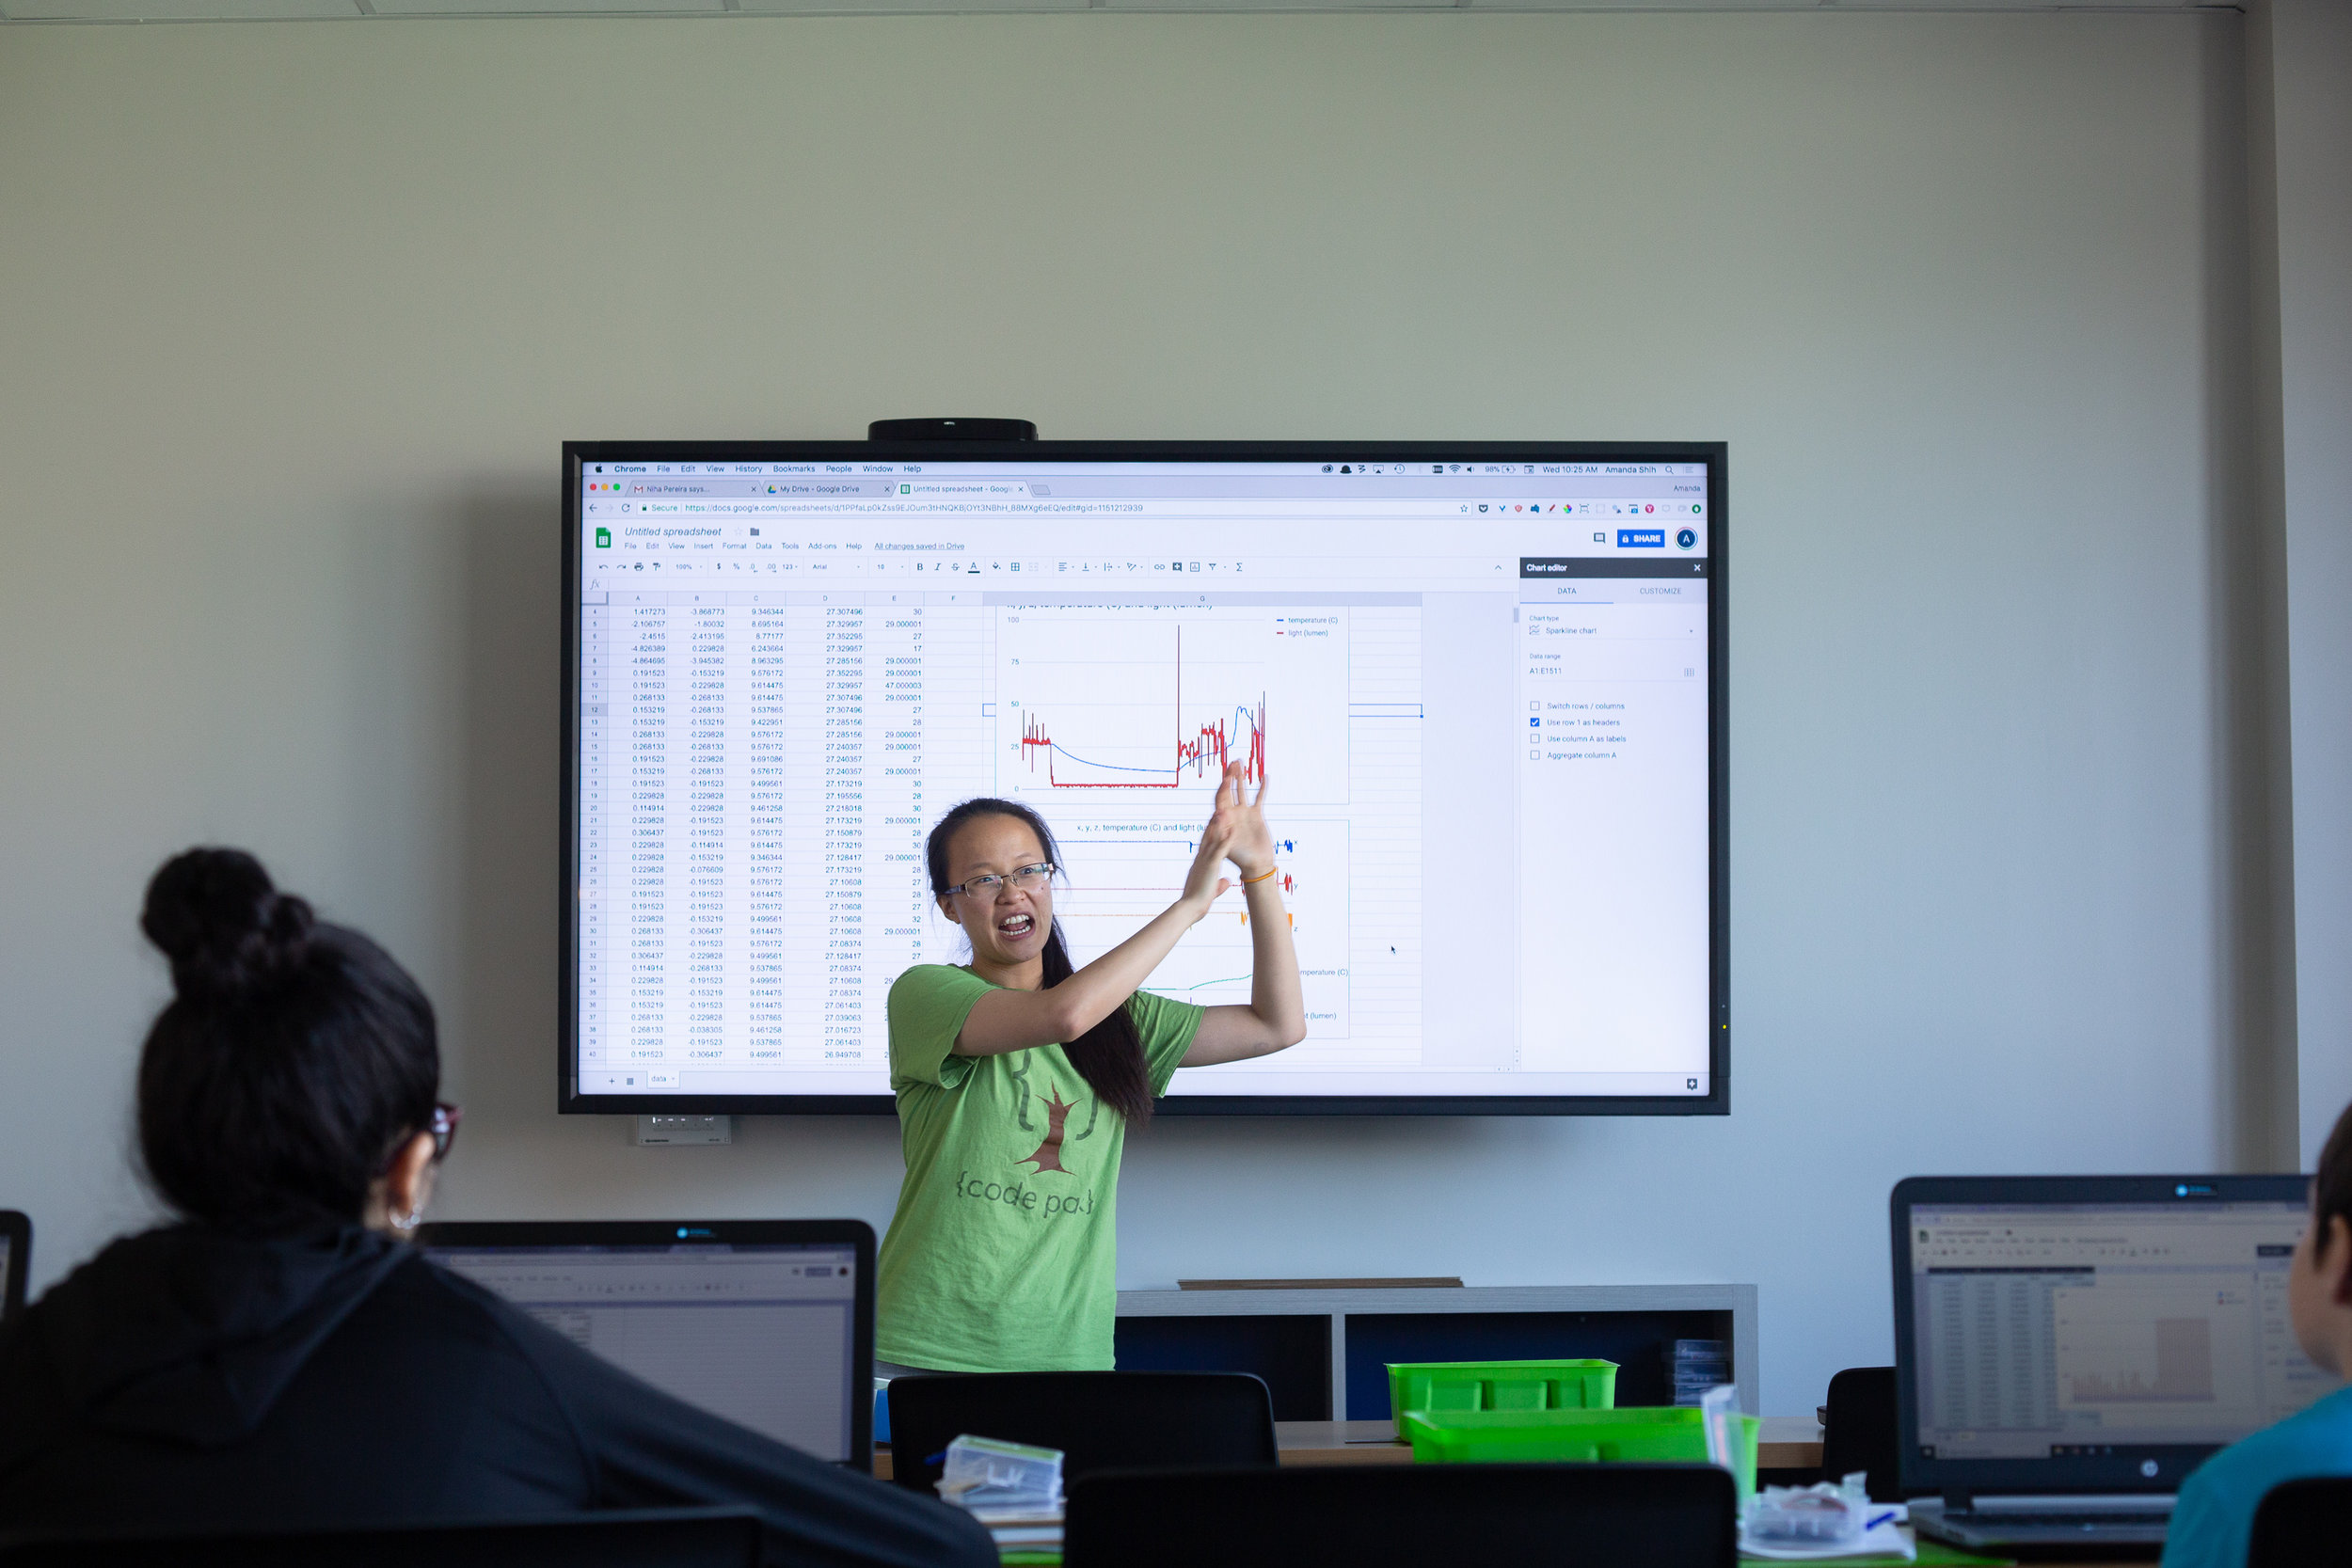 In Invent to Learn, students program a circuit board to gather temperature, light, and accelerometer data at home. Amanda shows how to make sense of environment data collected with simple visualization tools on google sheets. At Fab Lab Houston. Courtesy of Wanjun Zhang. August 8th, 2018.